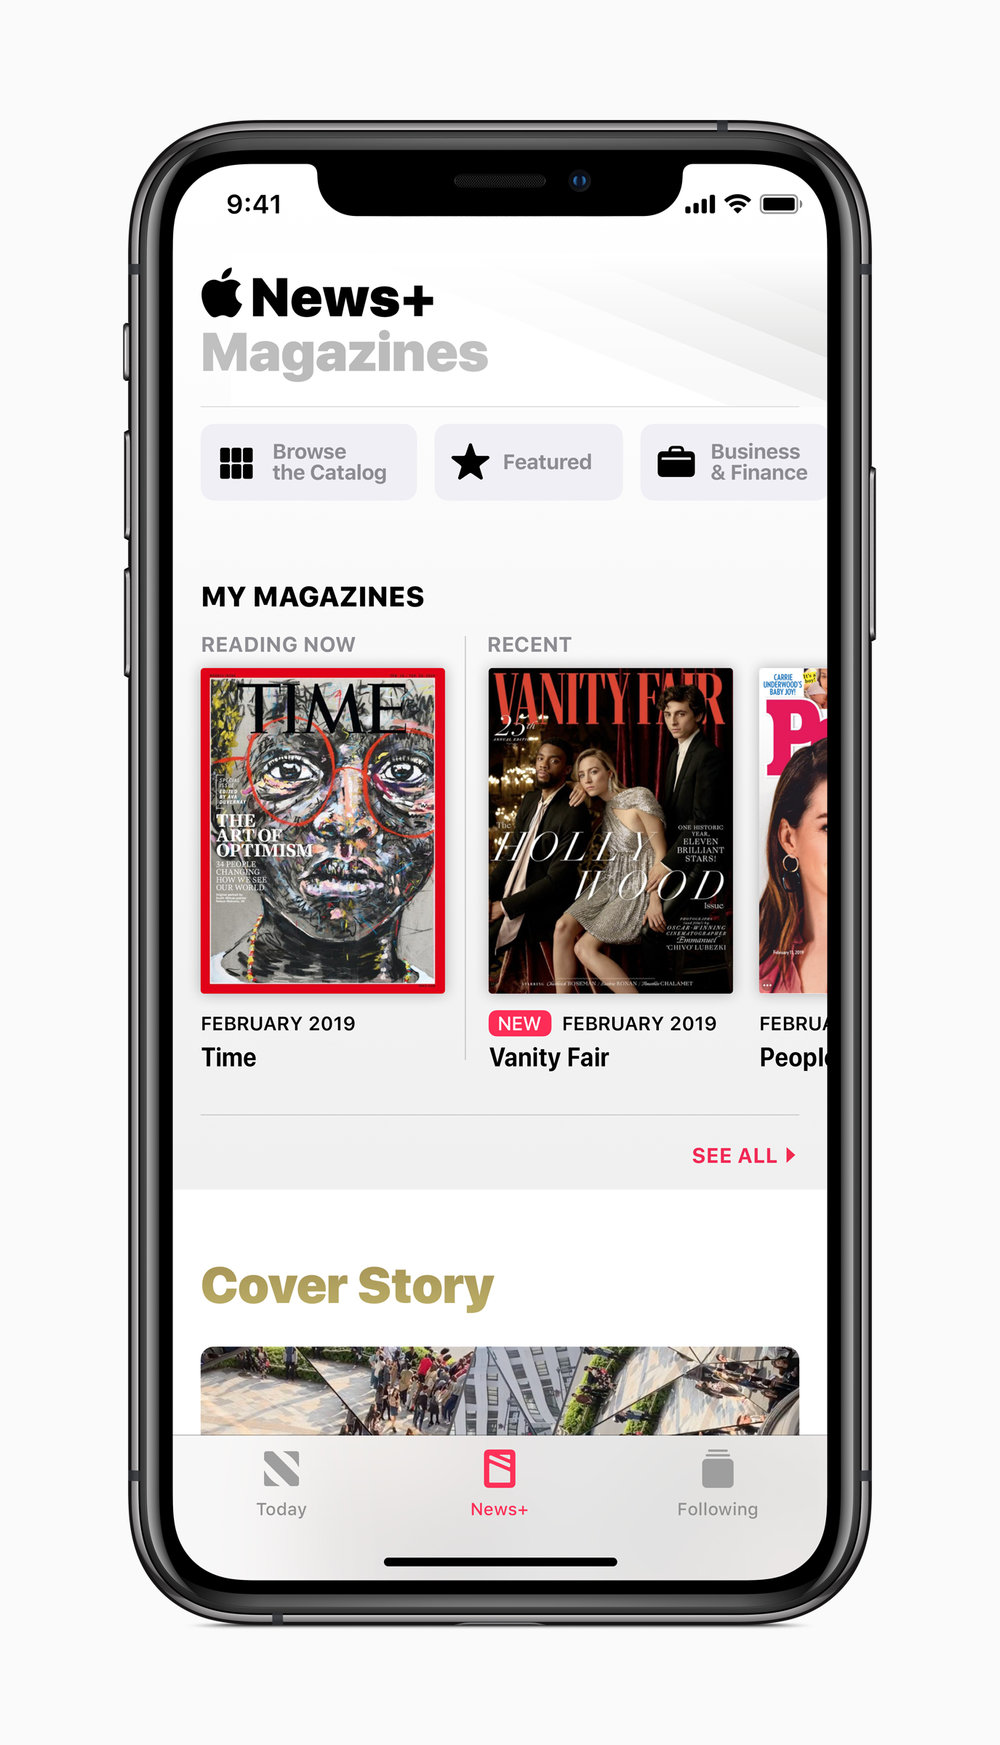 Apple-news-plus-magazines-iphone-screen-03252019.jpg